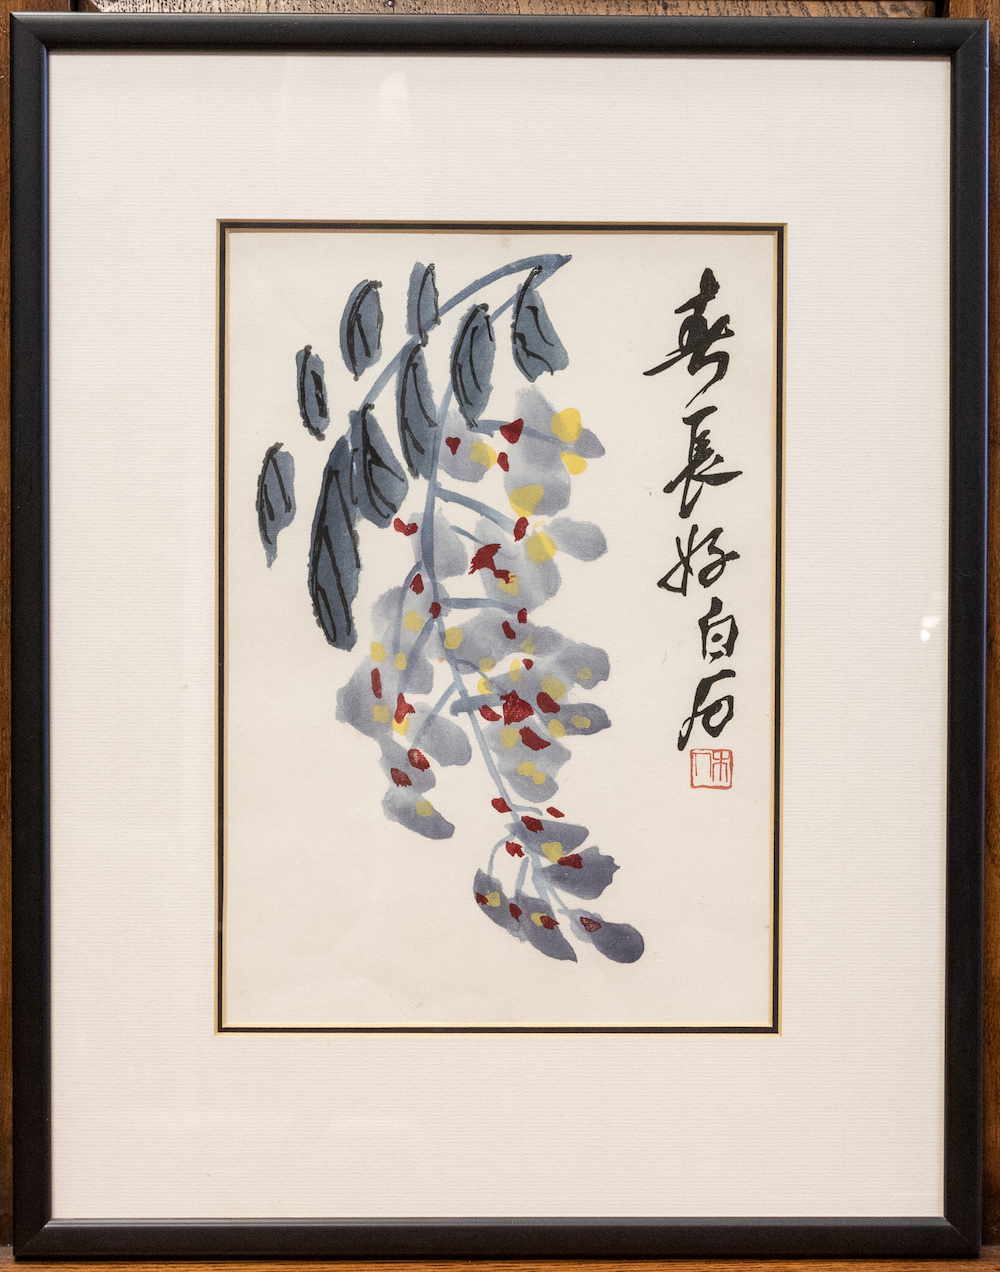 Painting by Chinese artist Qi Baishi